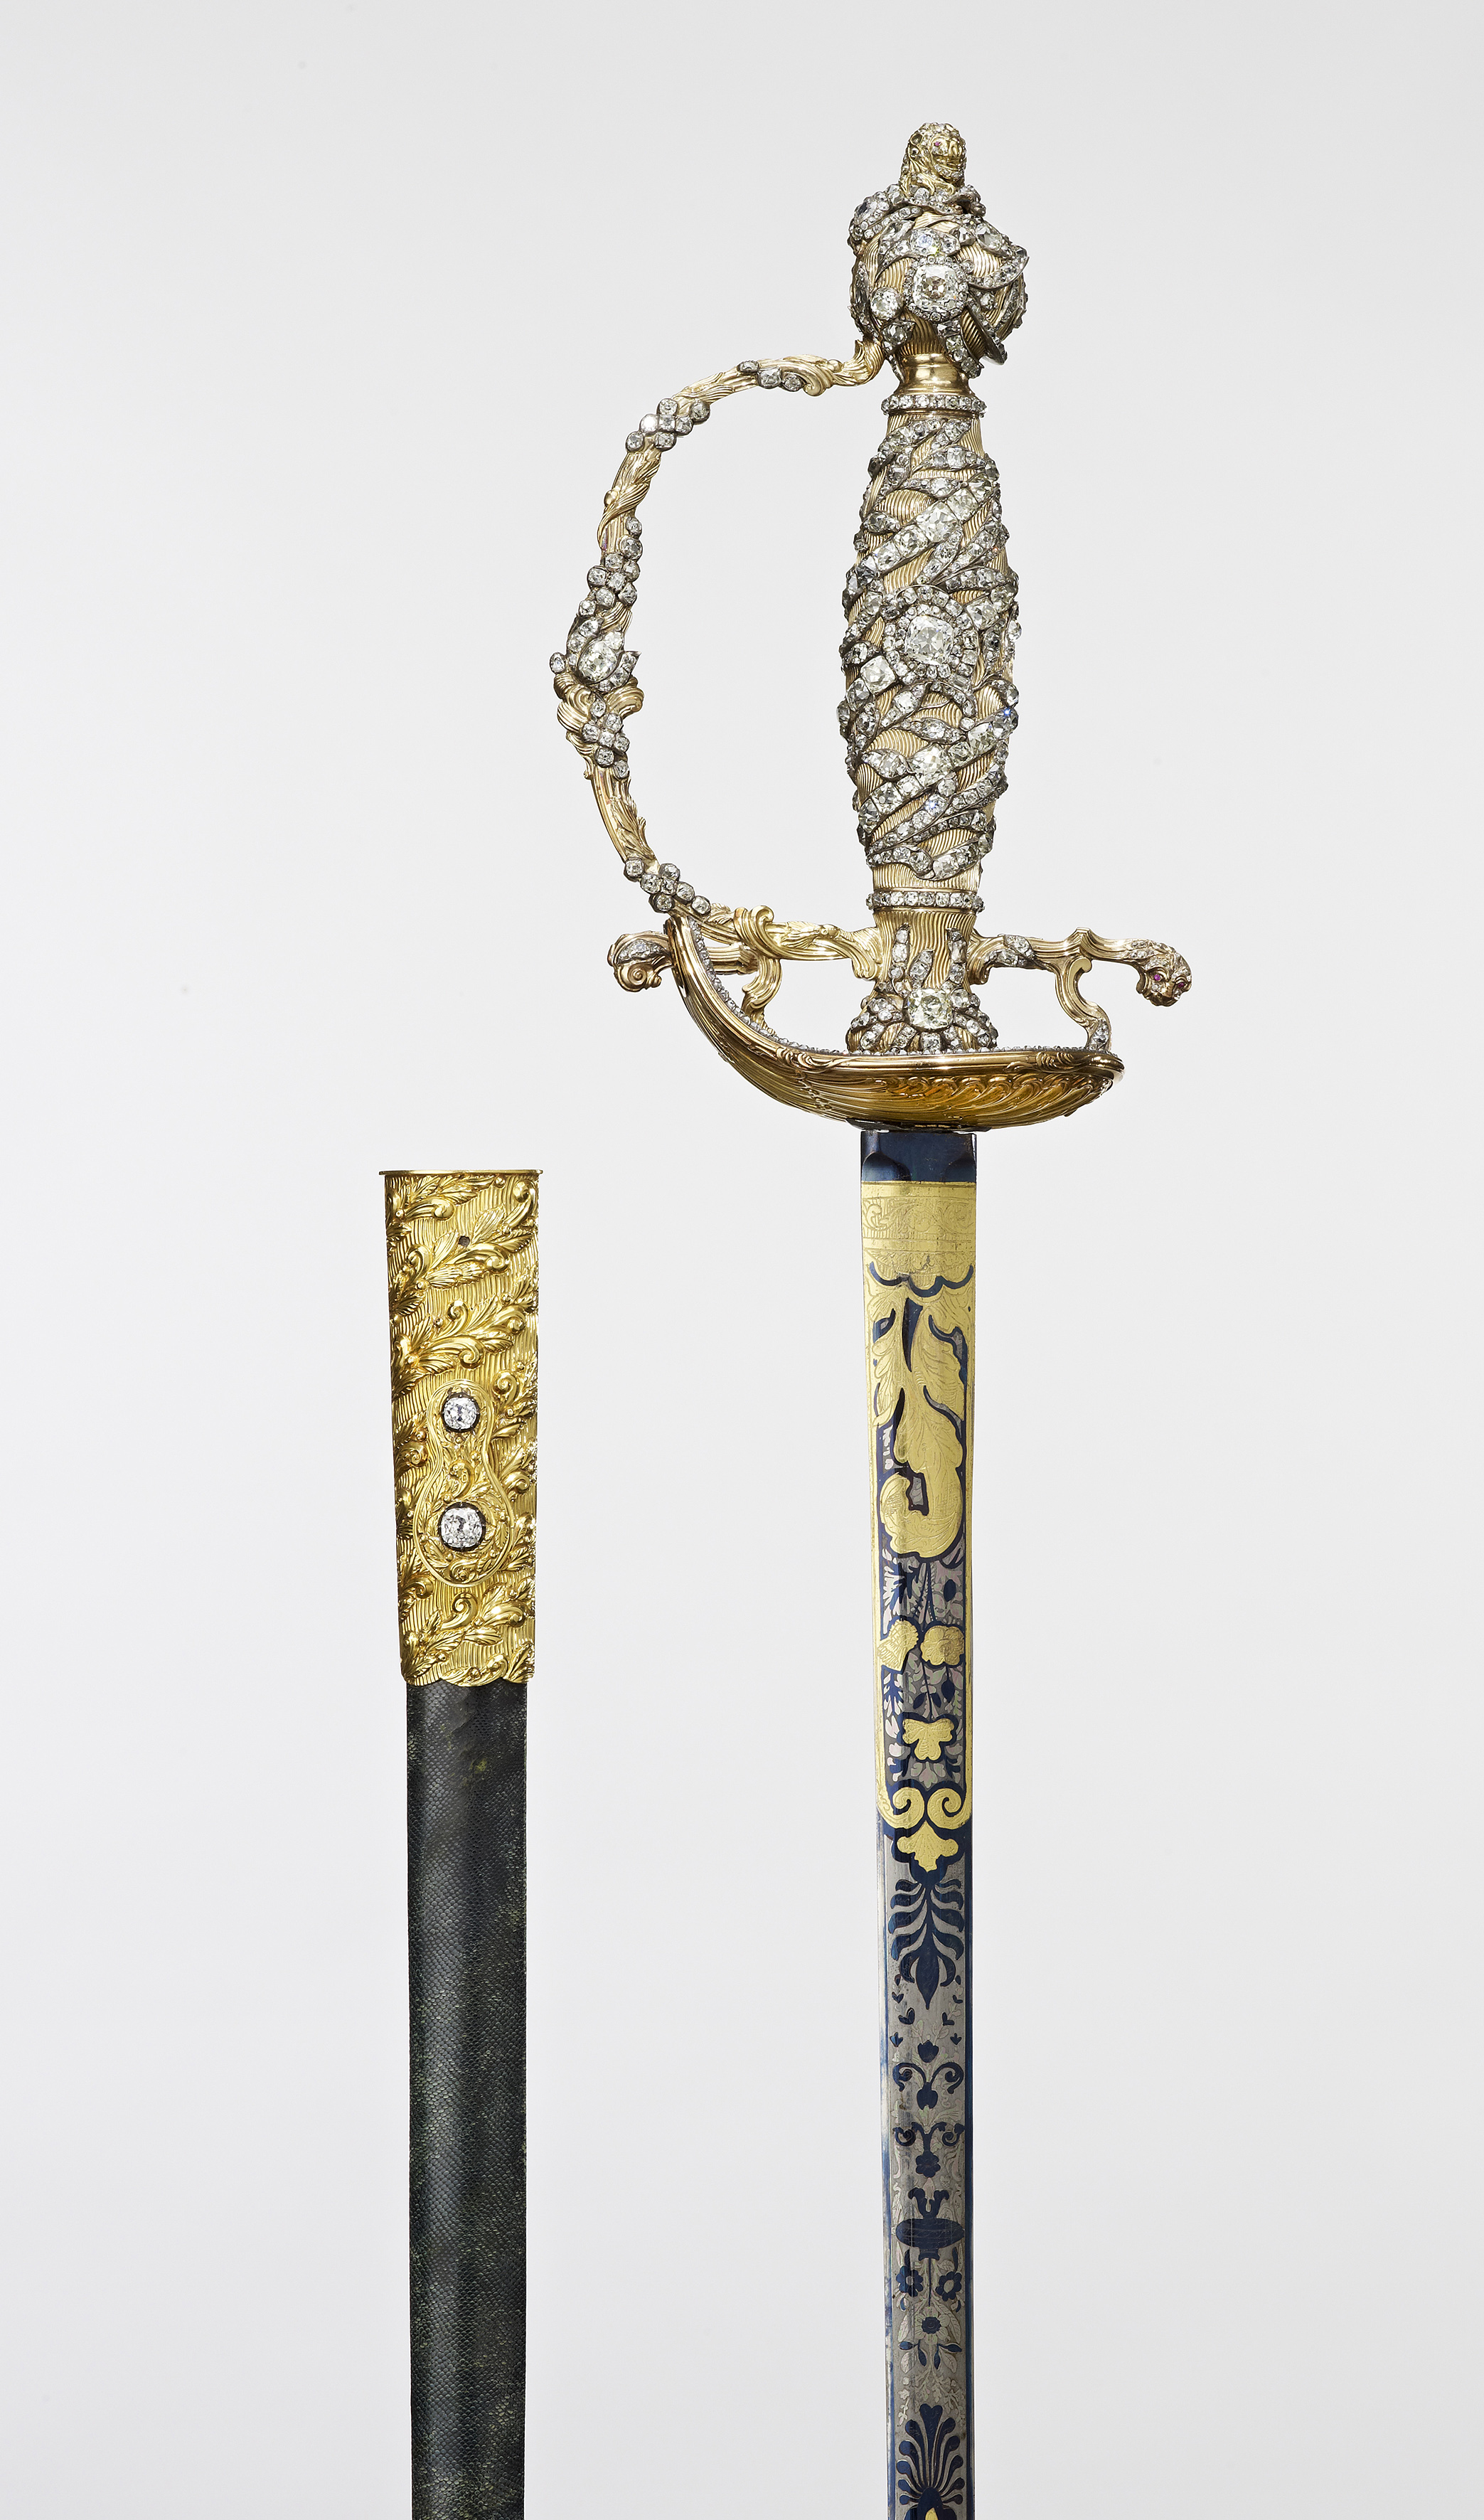 Rundell, Bridge and Rundell, Sword and scabbard, c.1750-1820